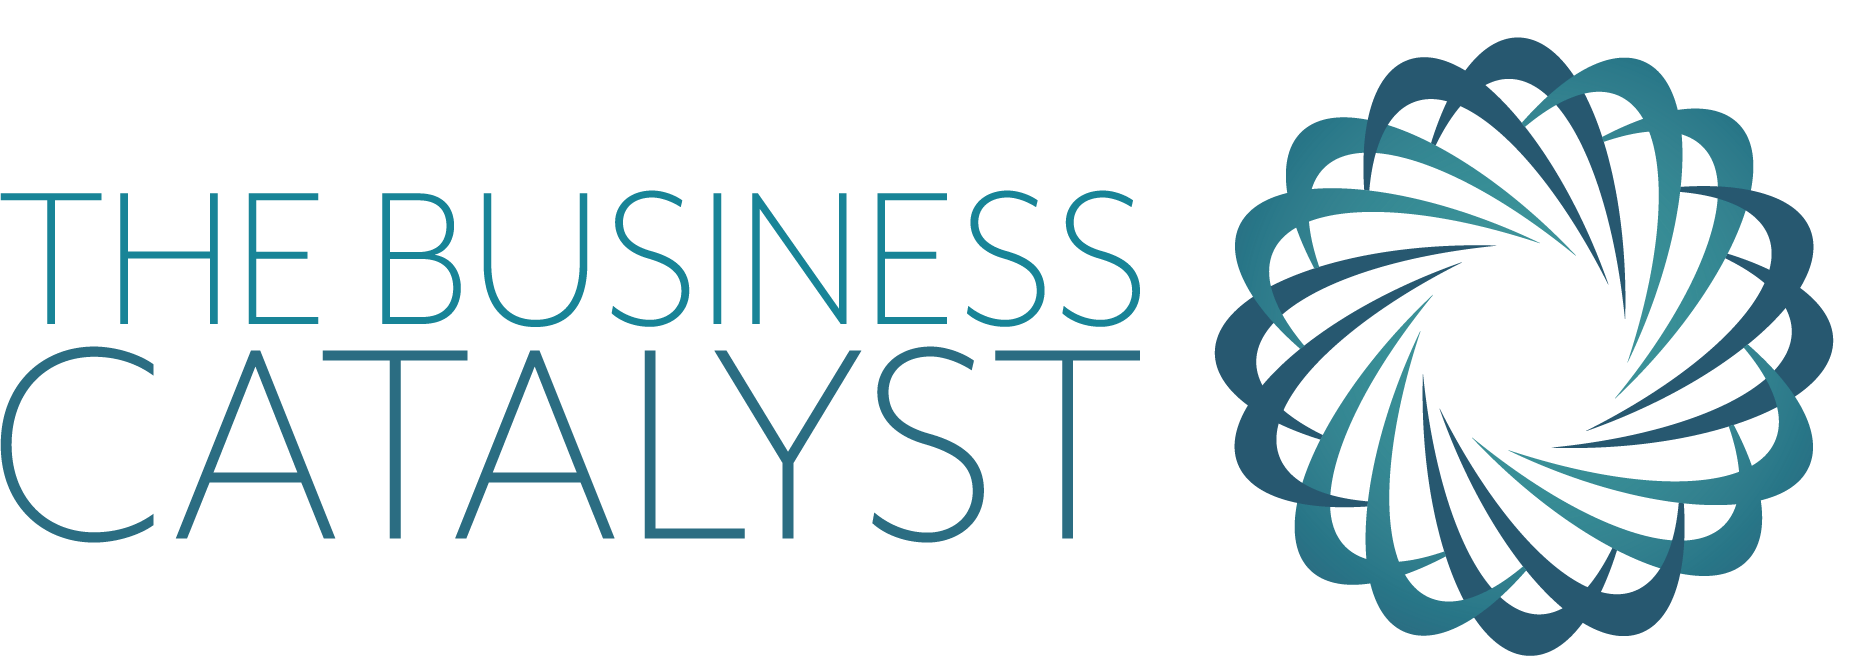 The Business Catalyst Logo